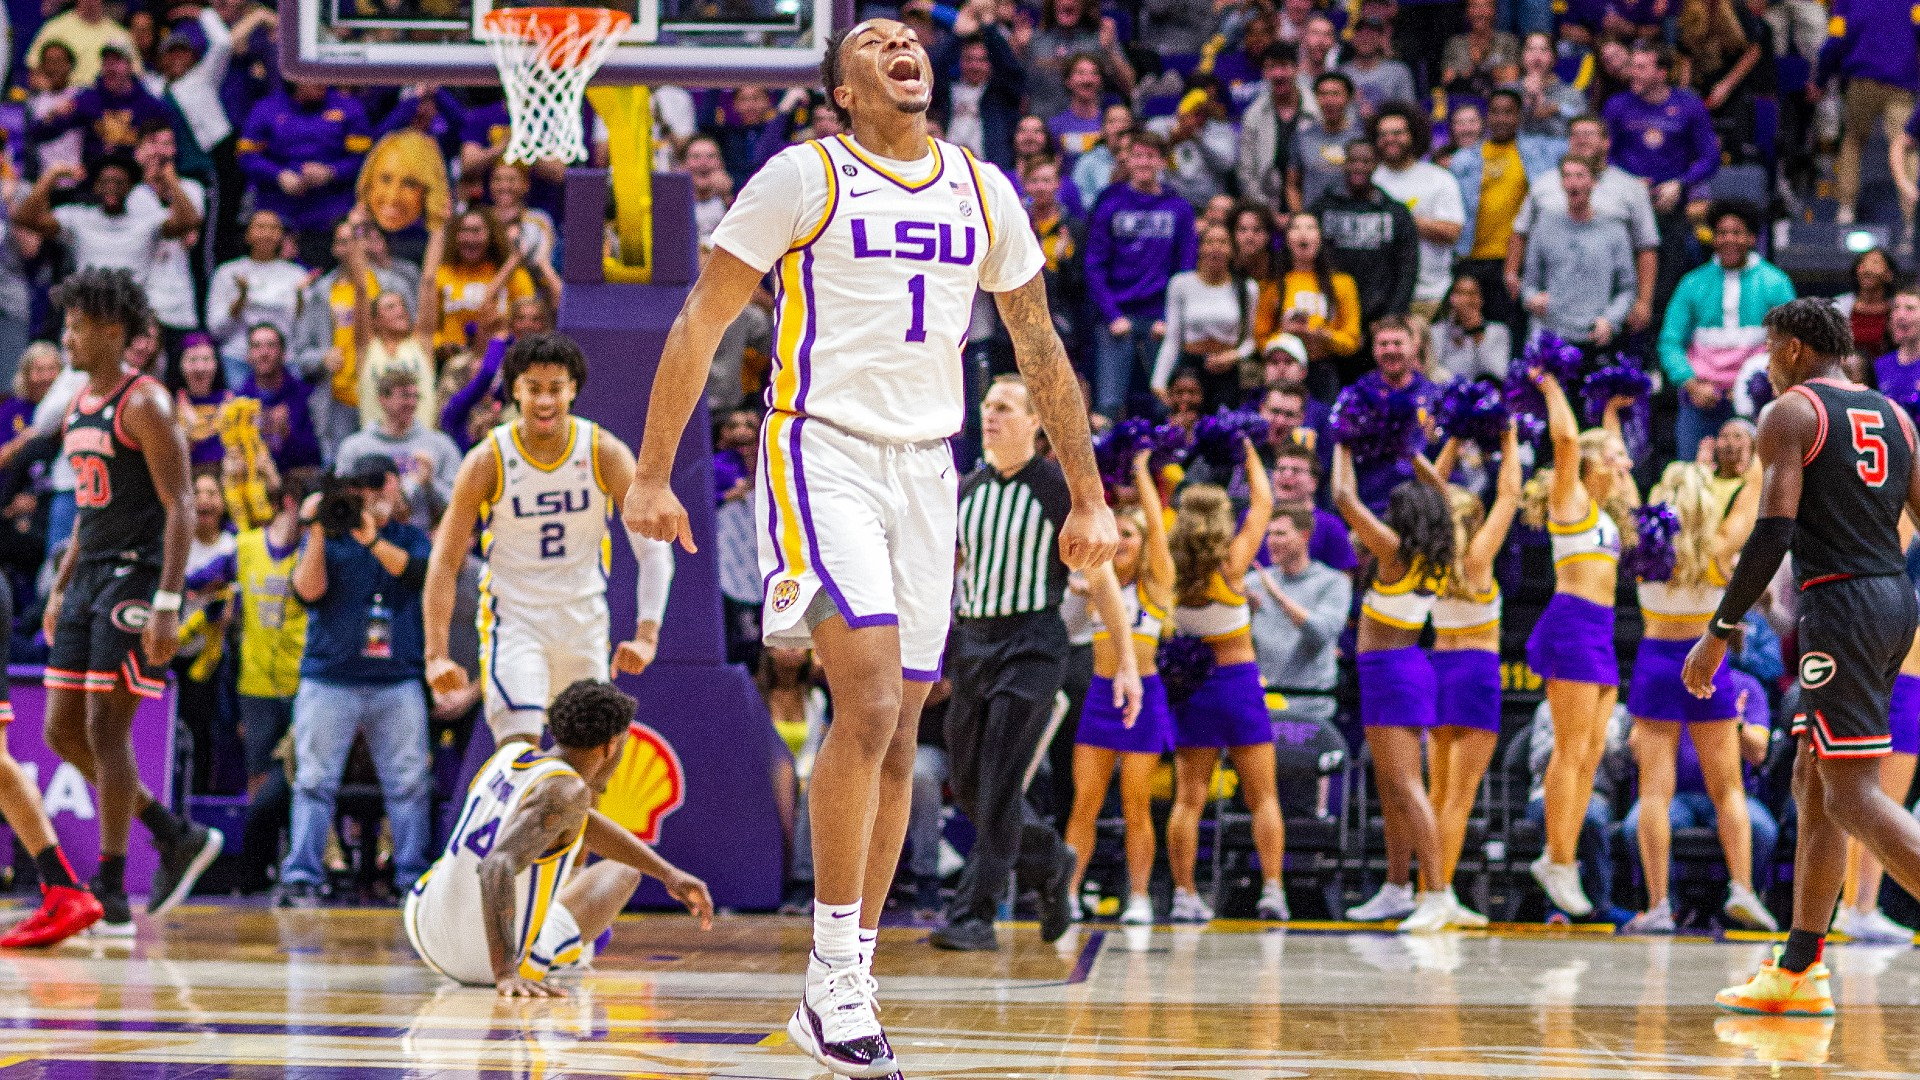 College Basketball Odds & Picks for LSU vs. Saint Louis: Betting Value on Underdog Tigers article feature image